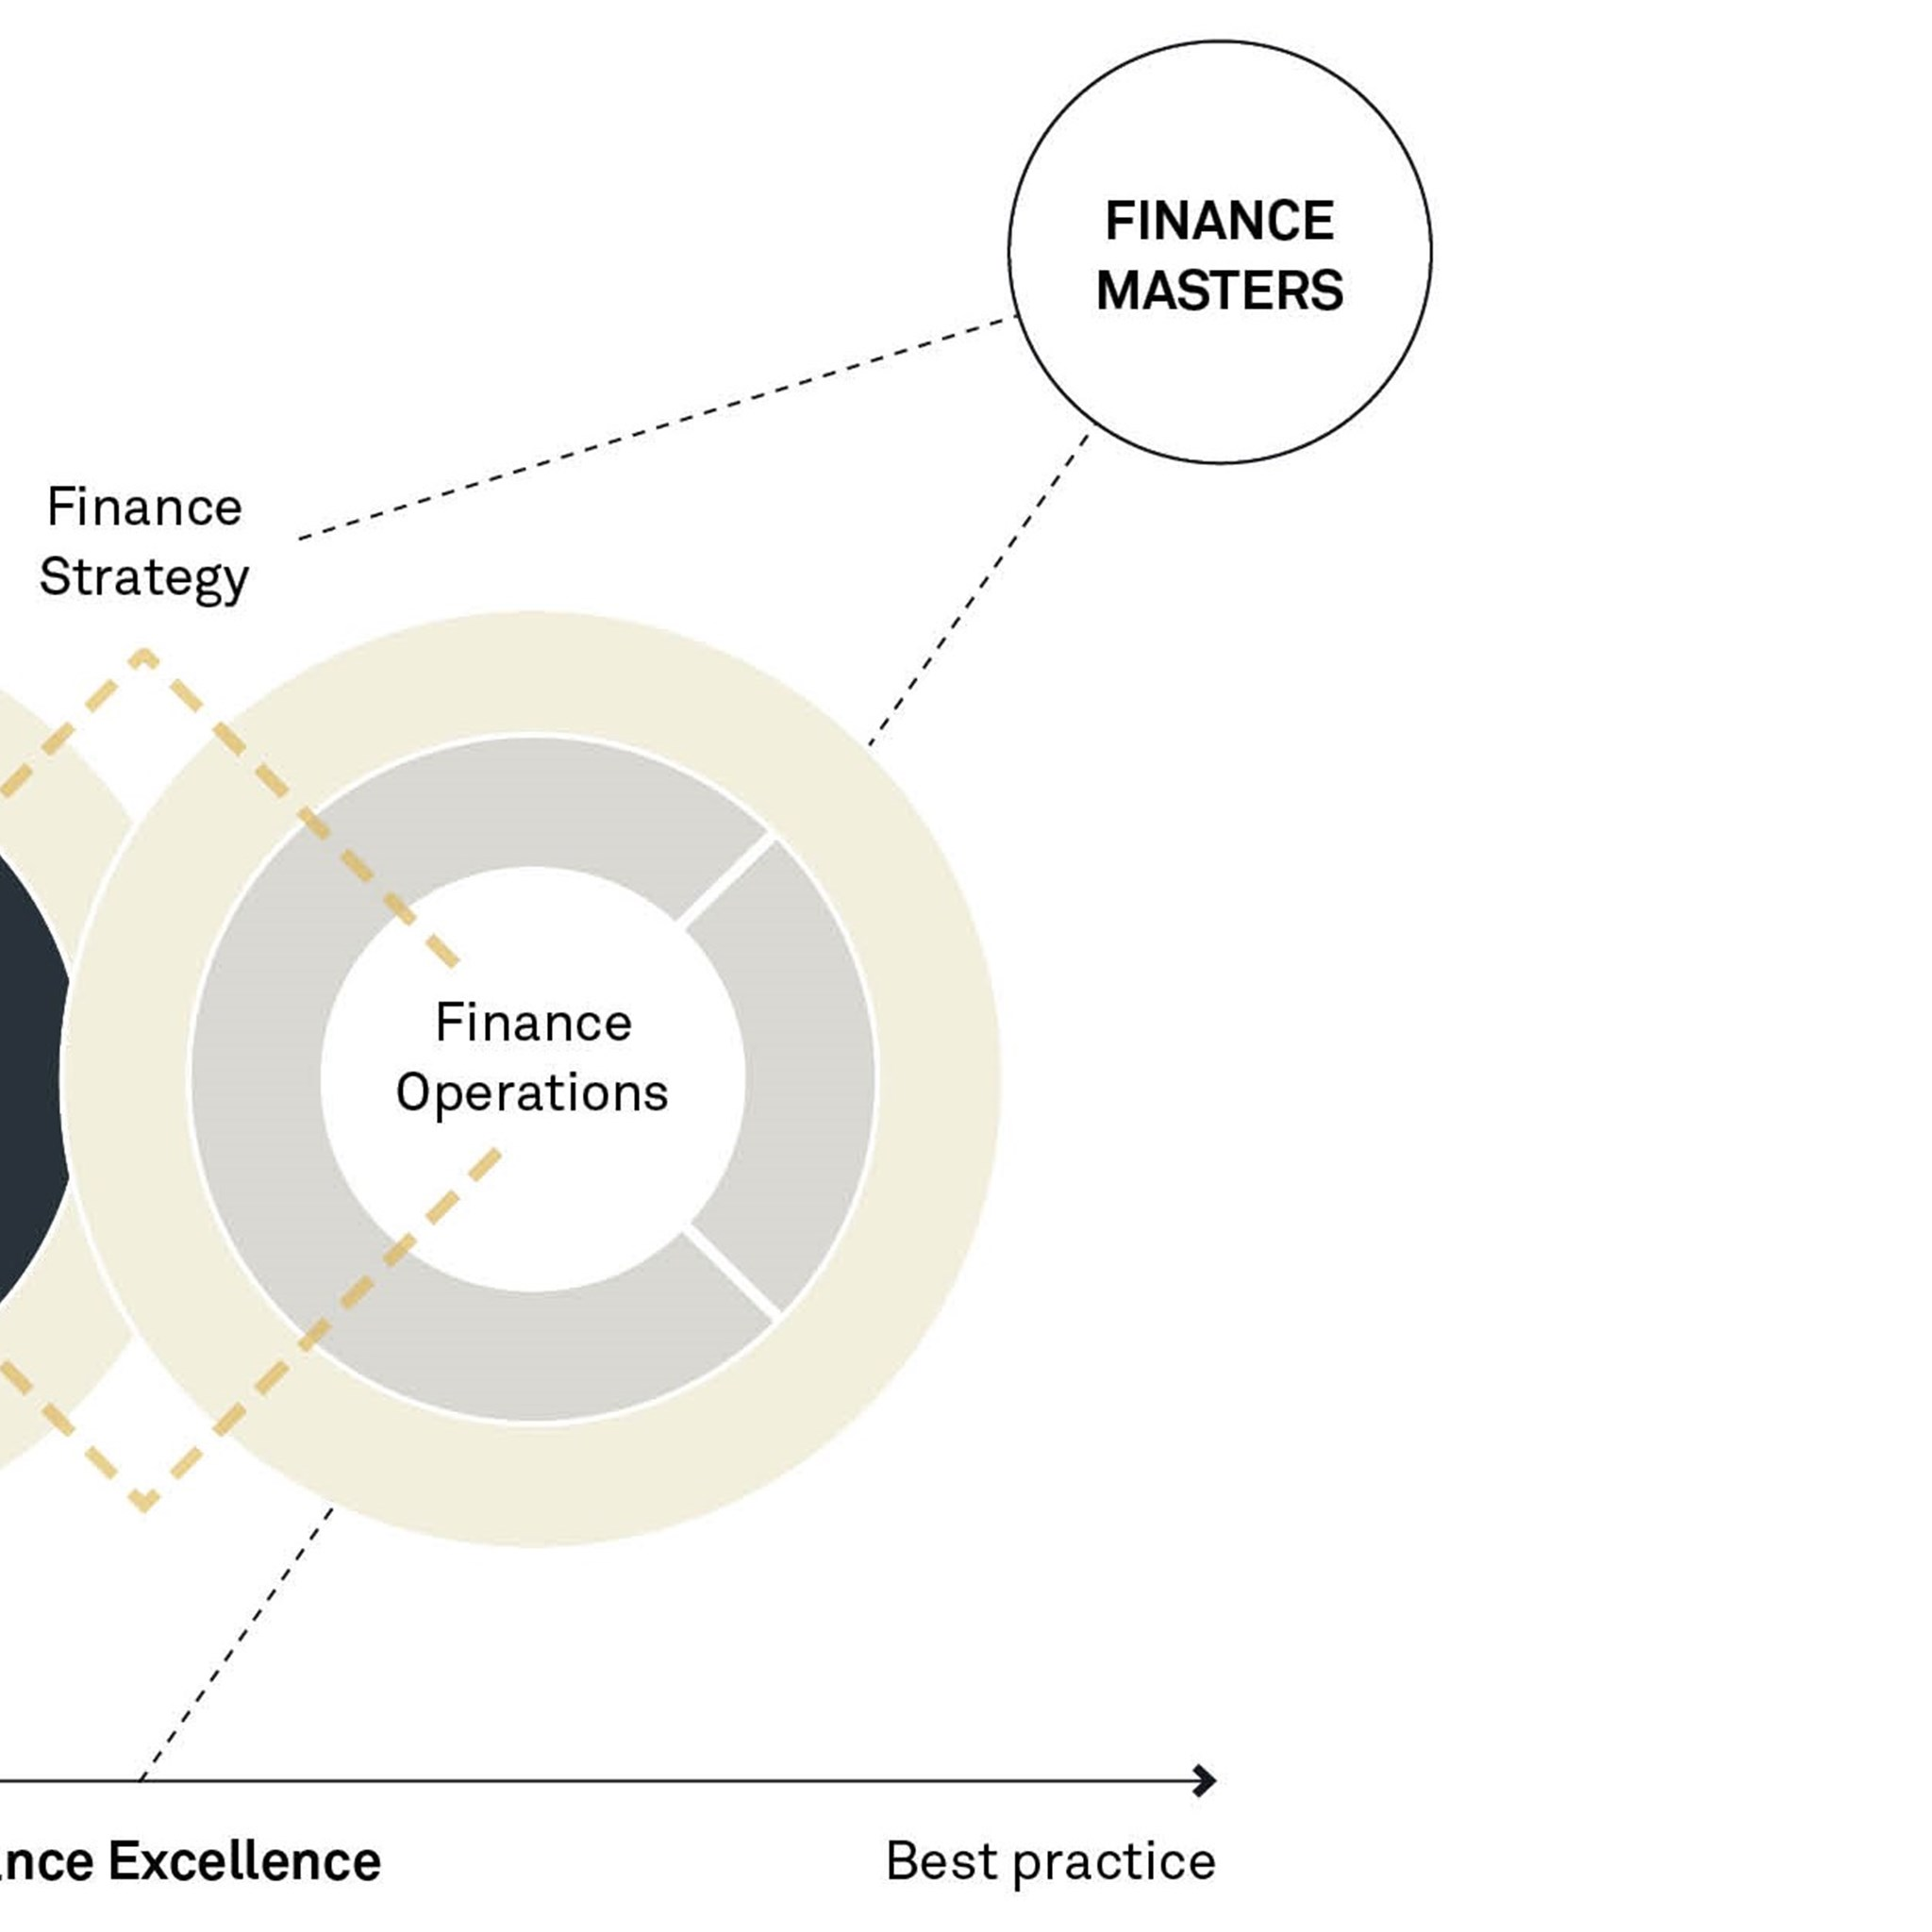 The finance strategy dictates the roadmap